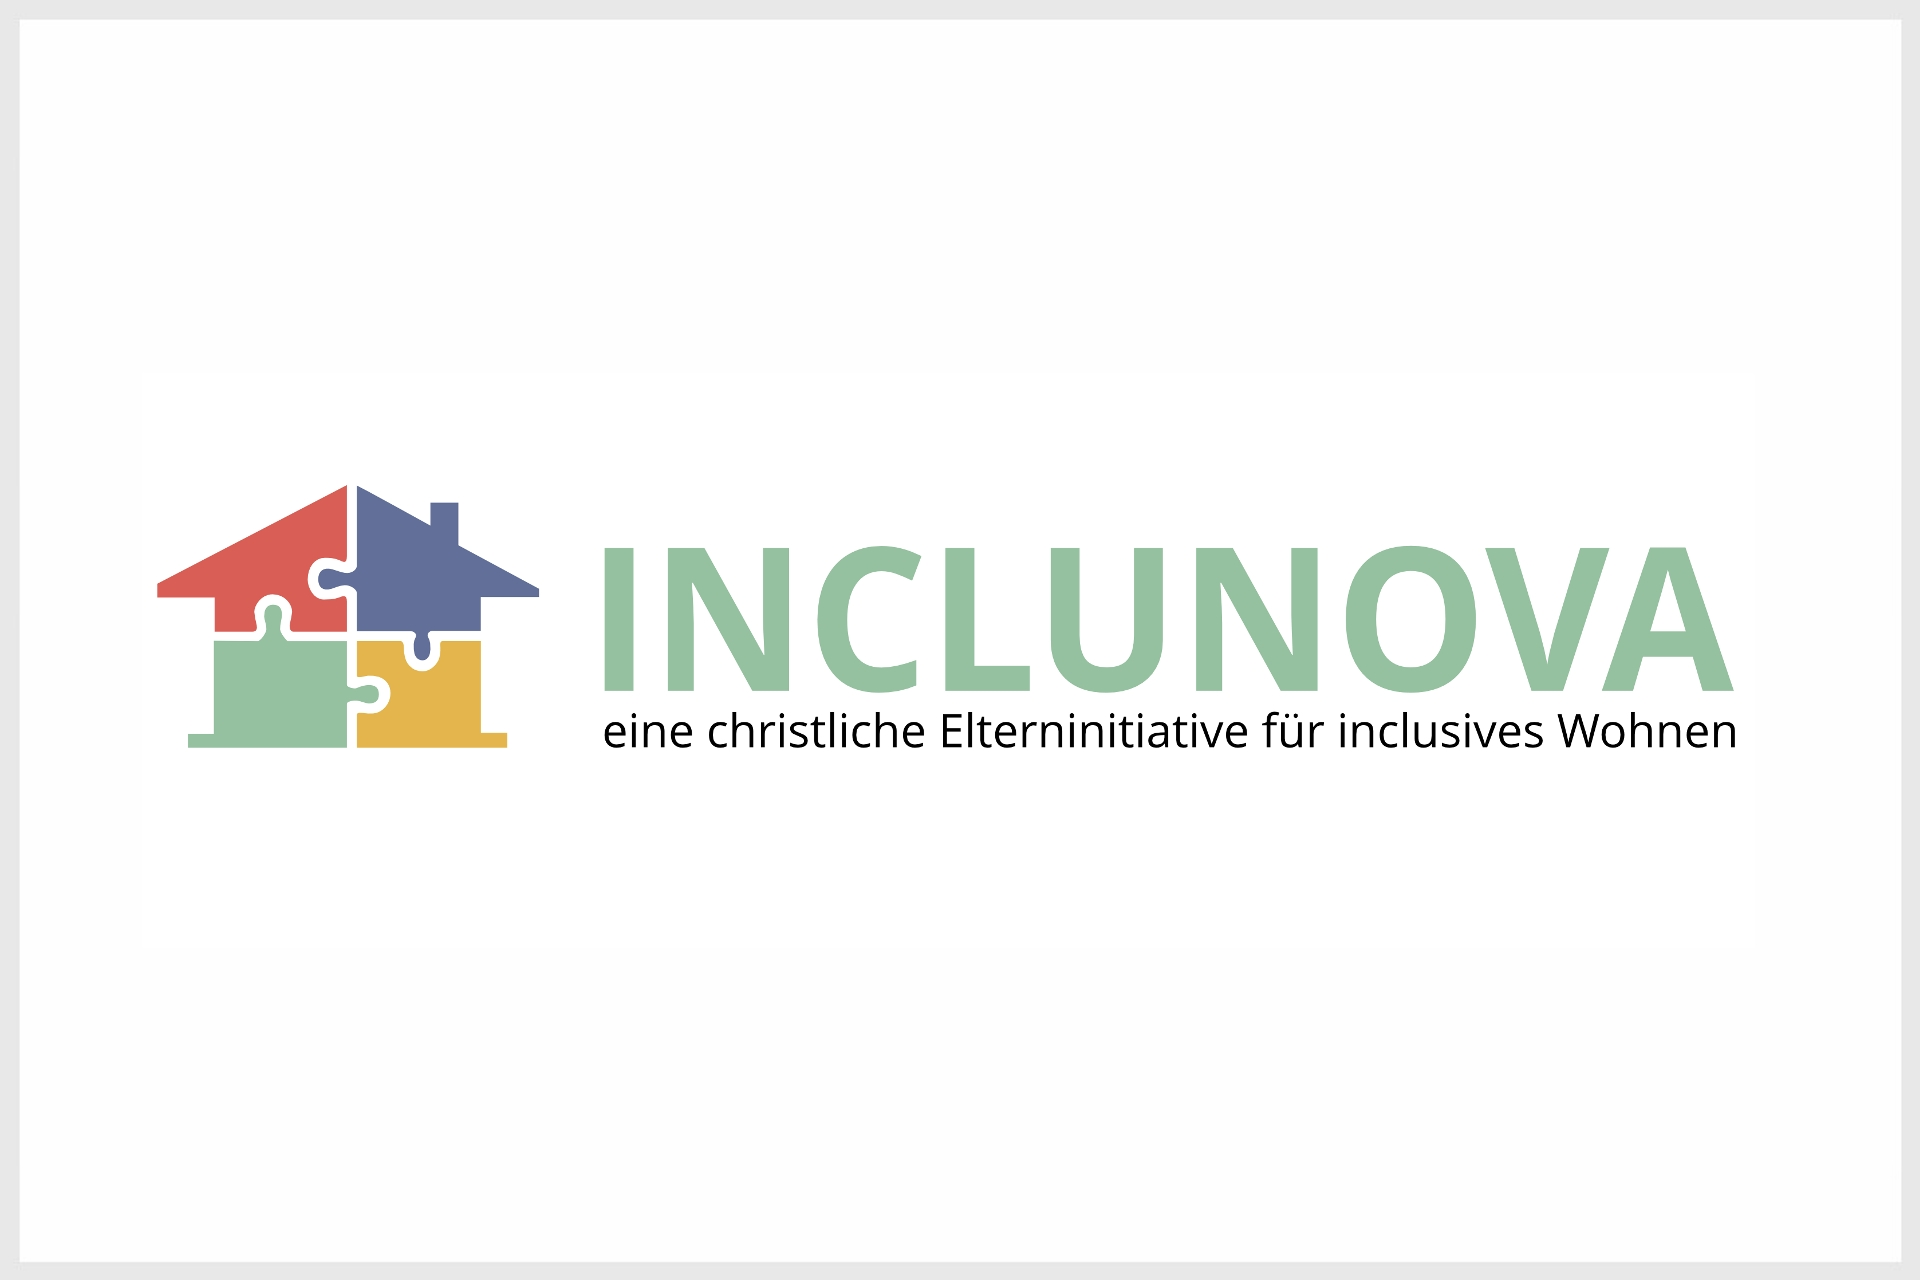 INCLUNOVA LOGO